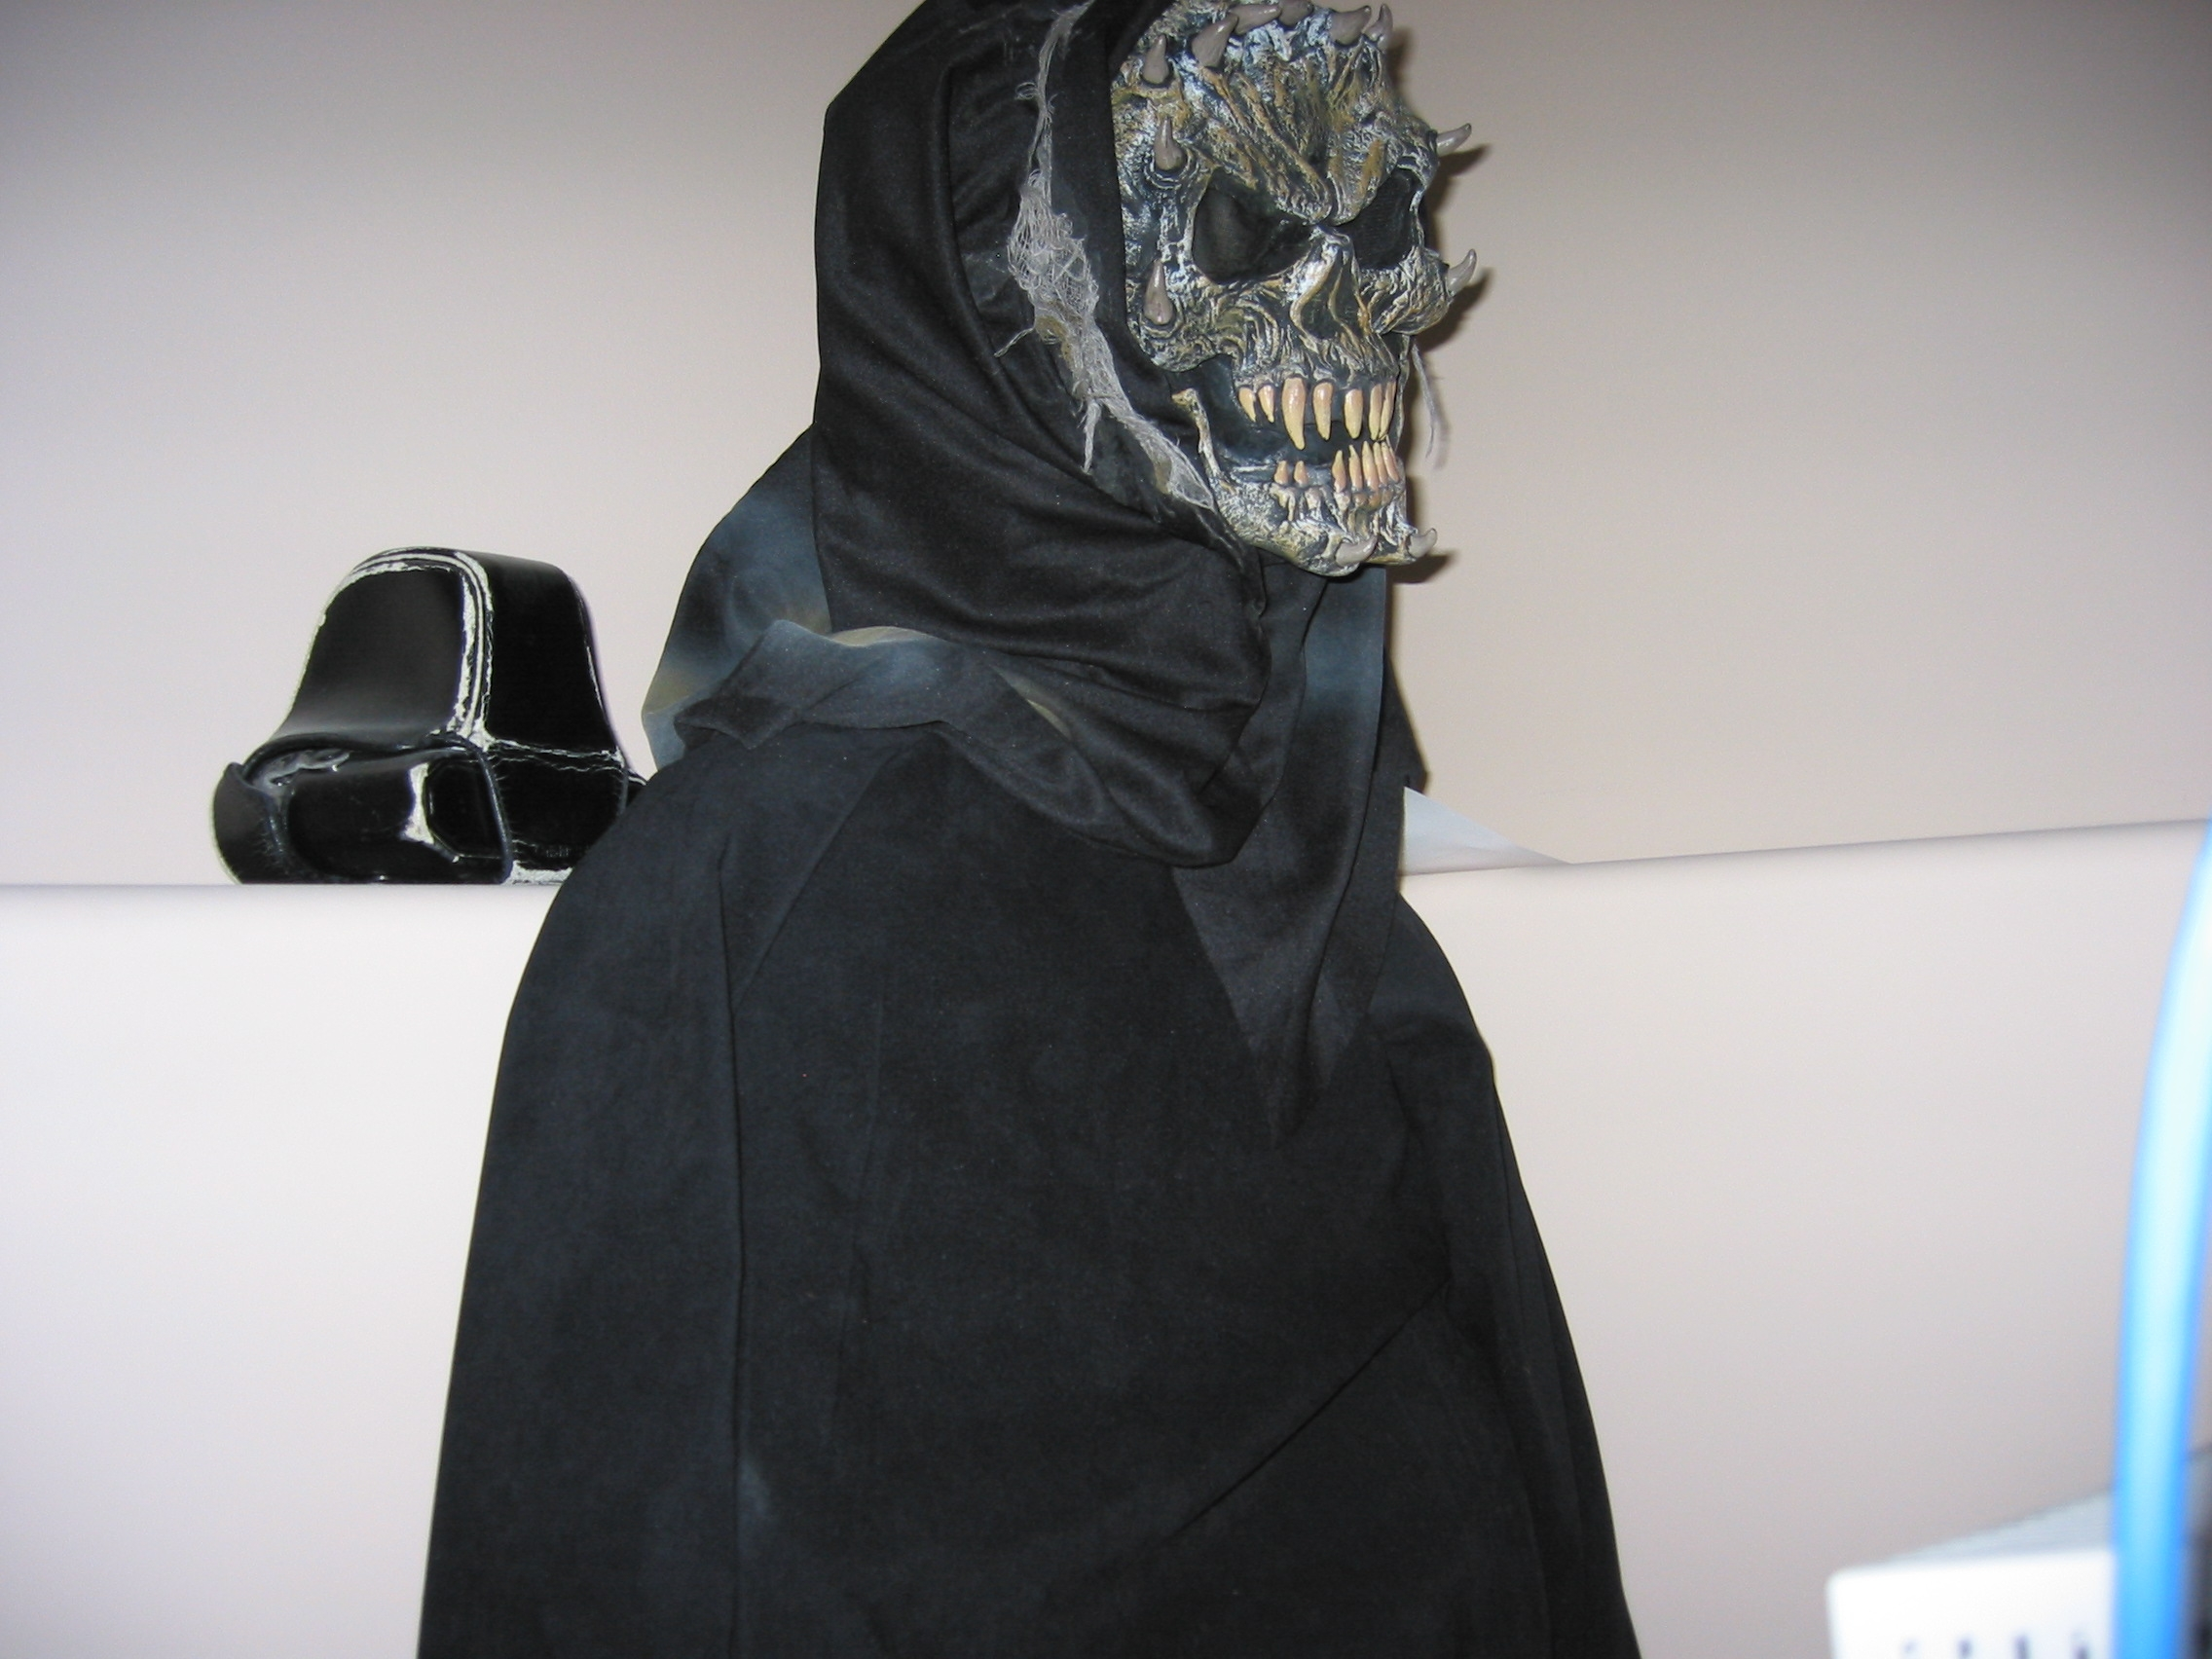 Scary Statue!